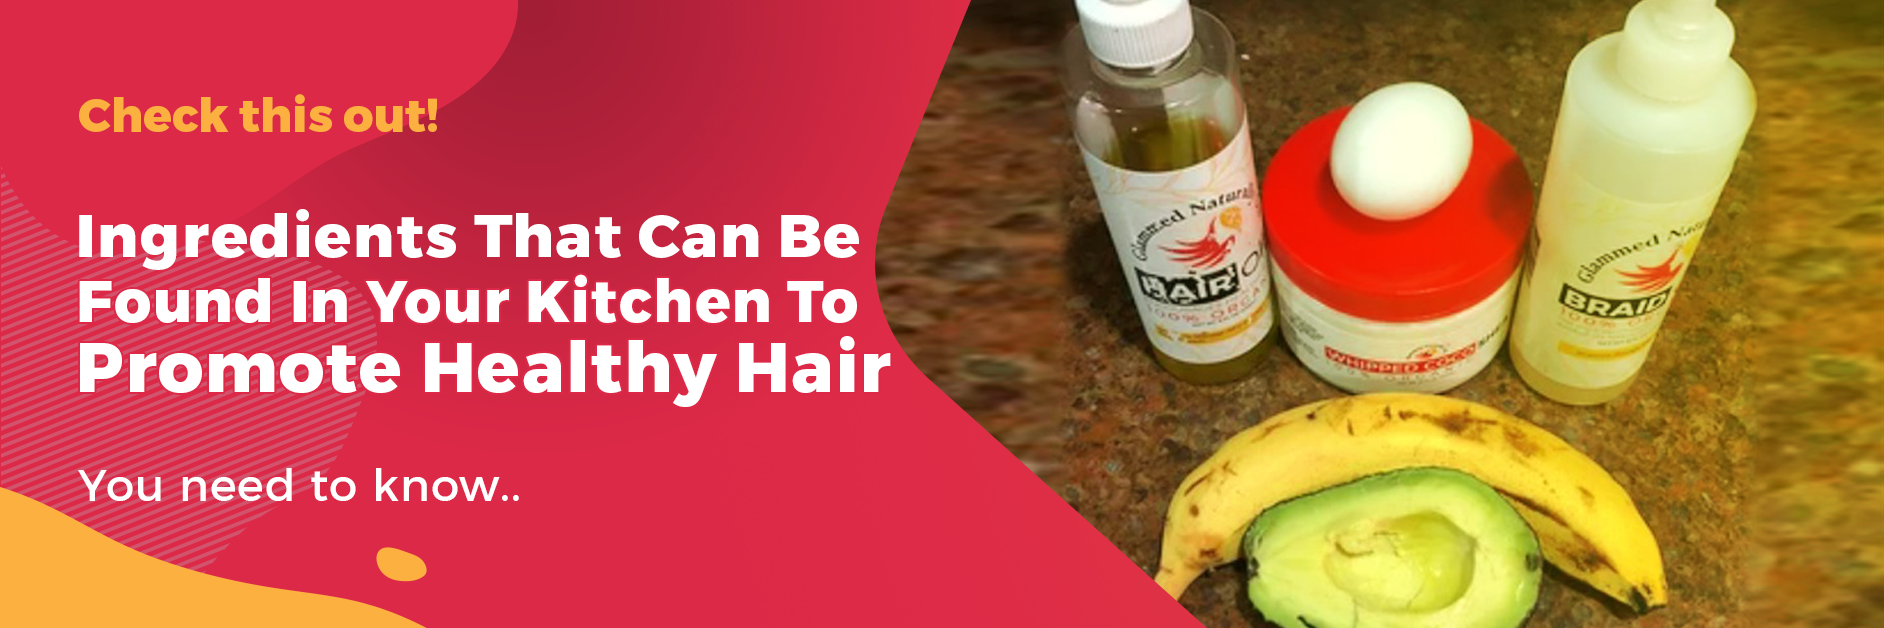 Ingredients that can be Found in your Kitchen to Promote Healthy Hair